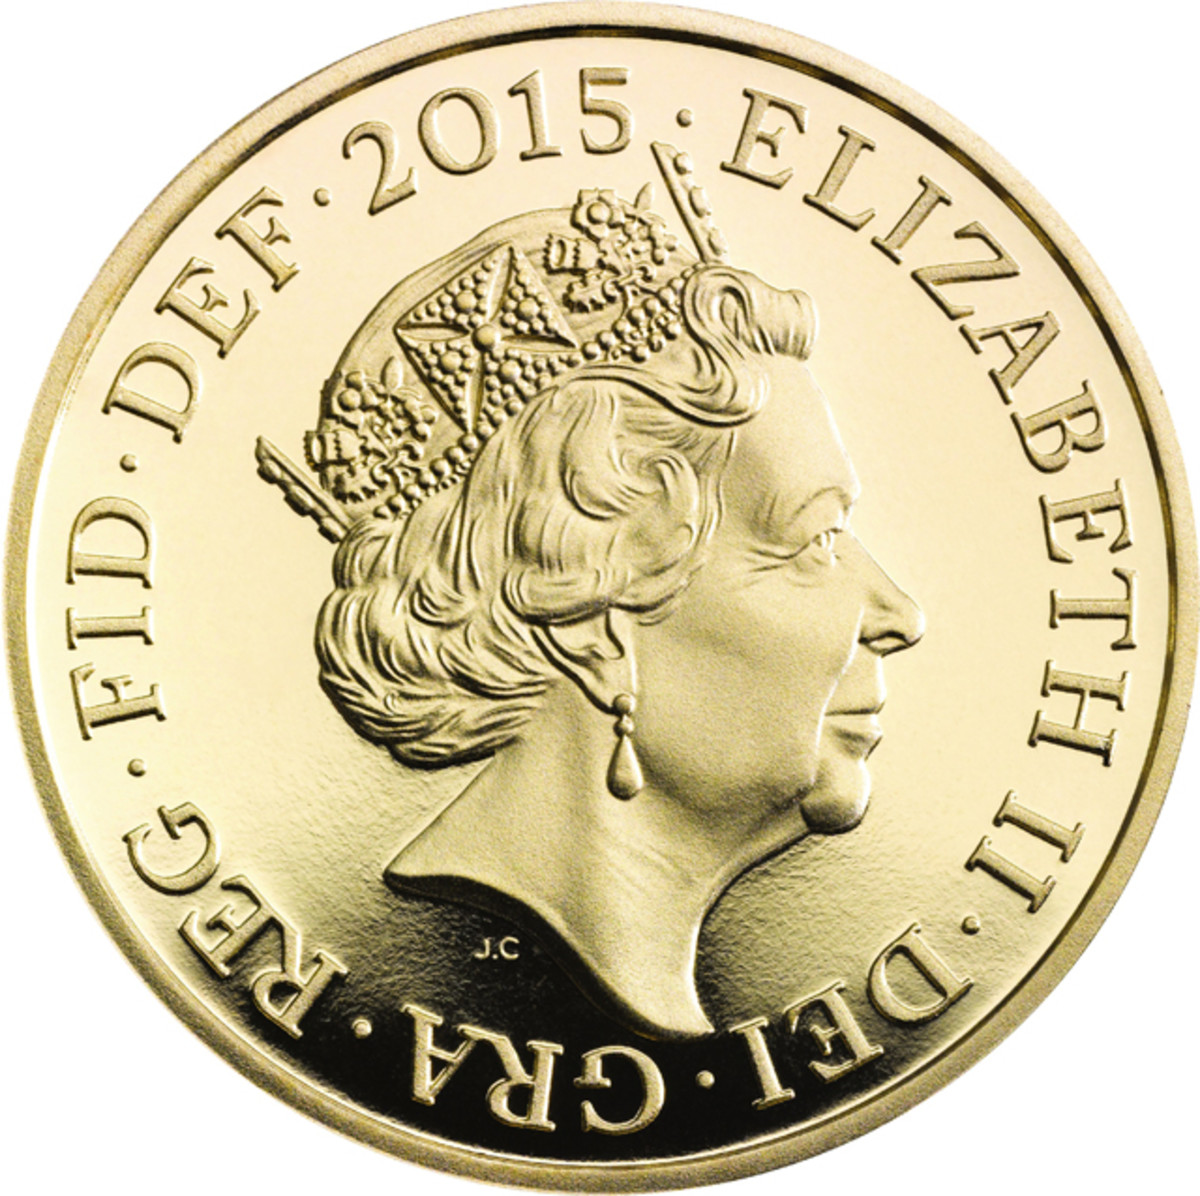 The latest effigy of Queen Elizabeth II by the Royal Mint's Jody Clark and introduced on British coins from the first quarter of 2015. Image courtesy & © Royal Mint.